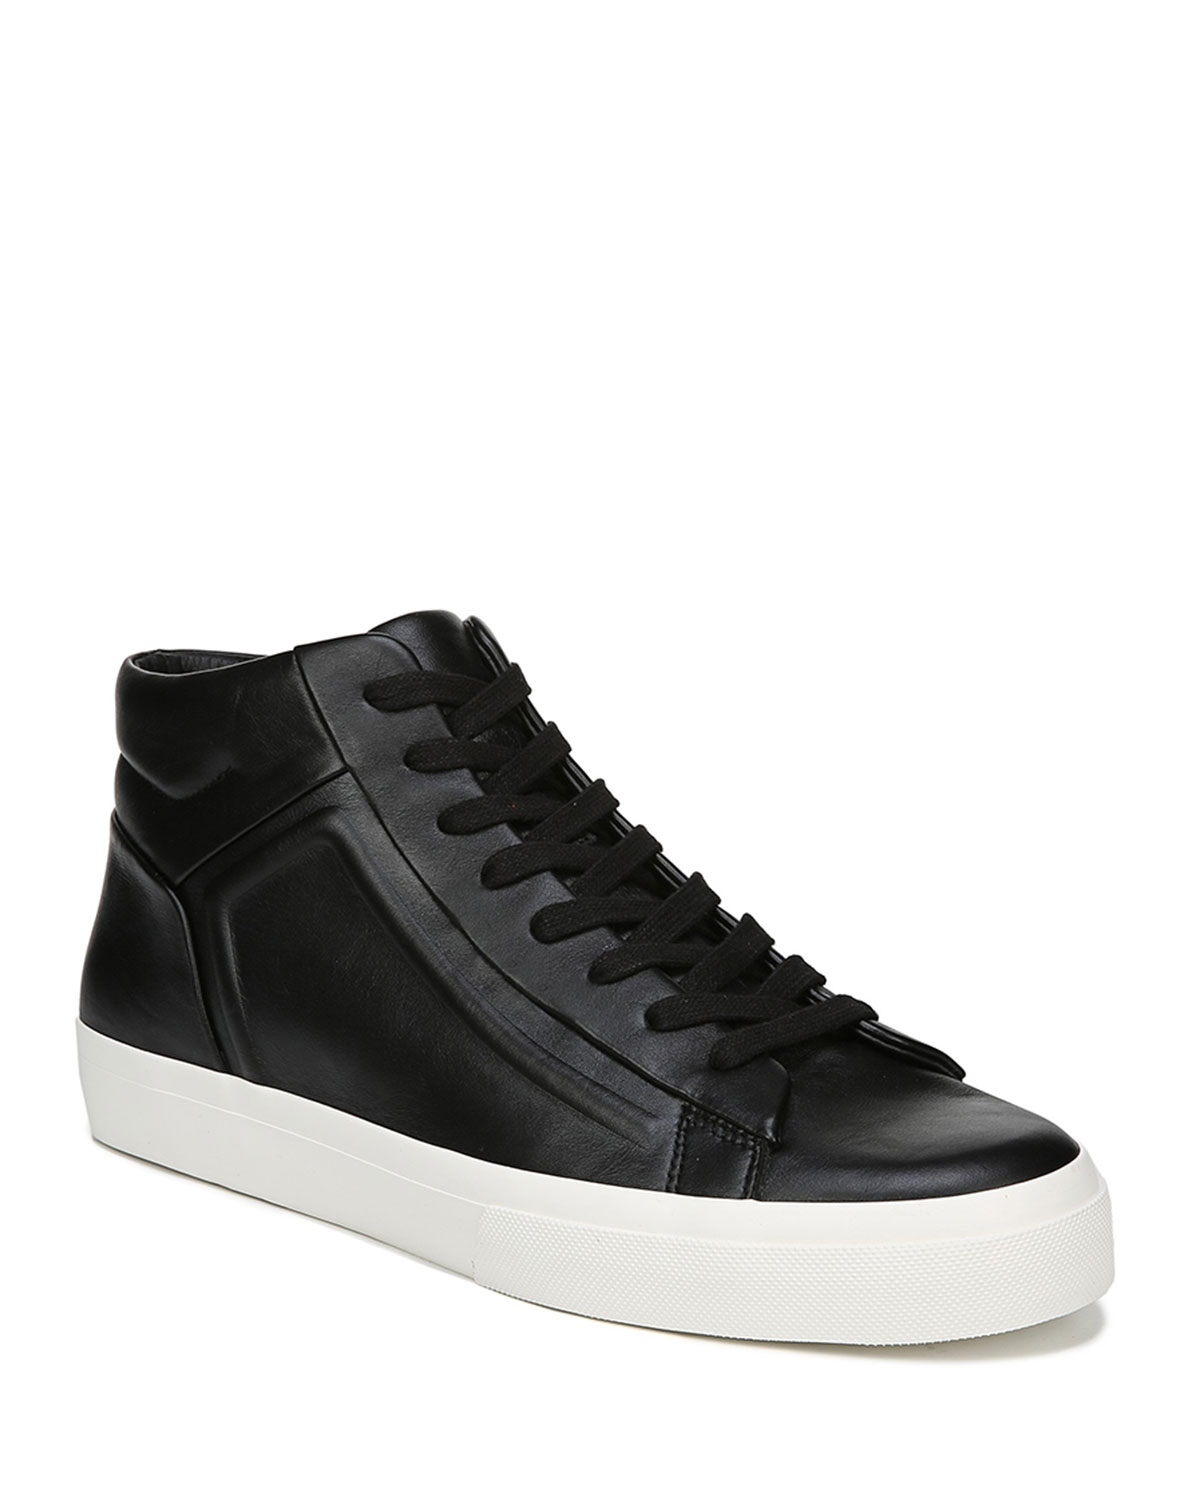 Vince Leathers MEN'S FYNN GLOVE LEATHER LOW-TOP SNEAKERS